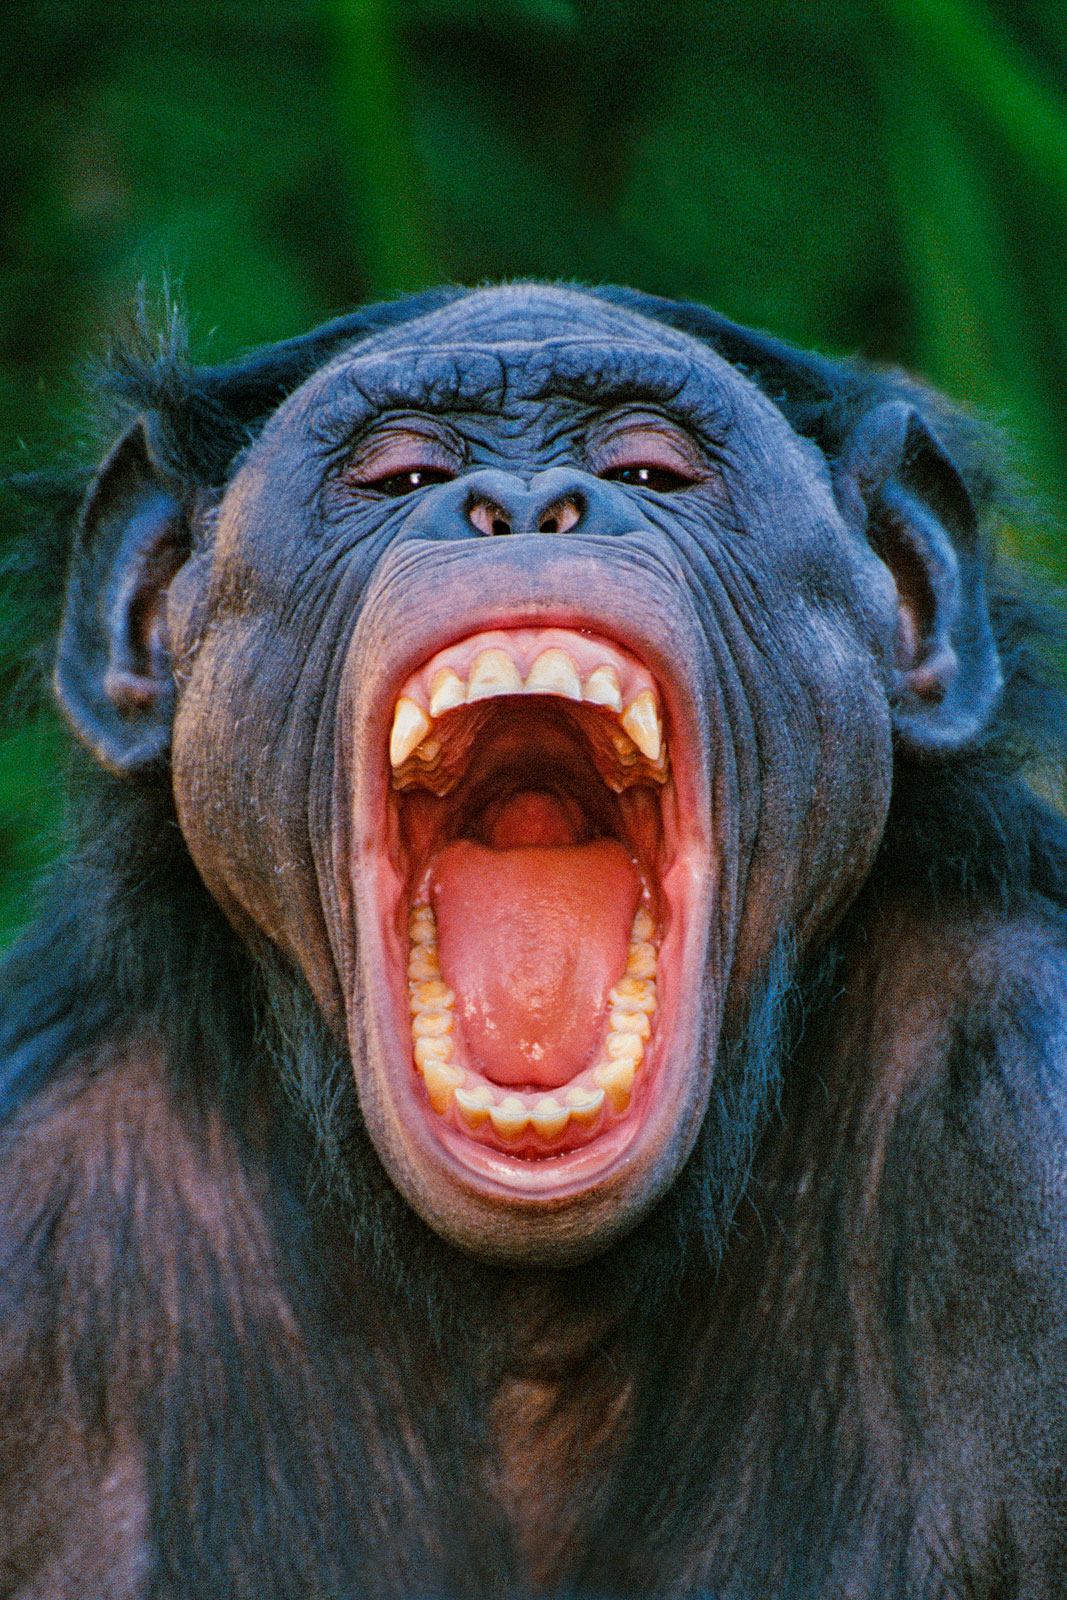 Bonobo grimacing, native to Congo (DRC)